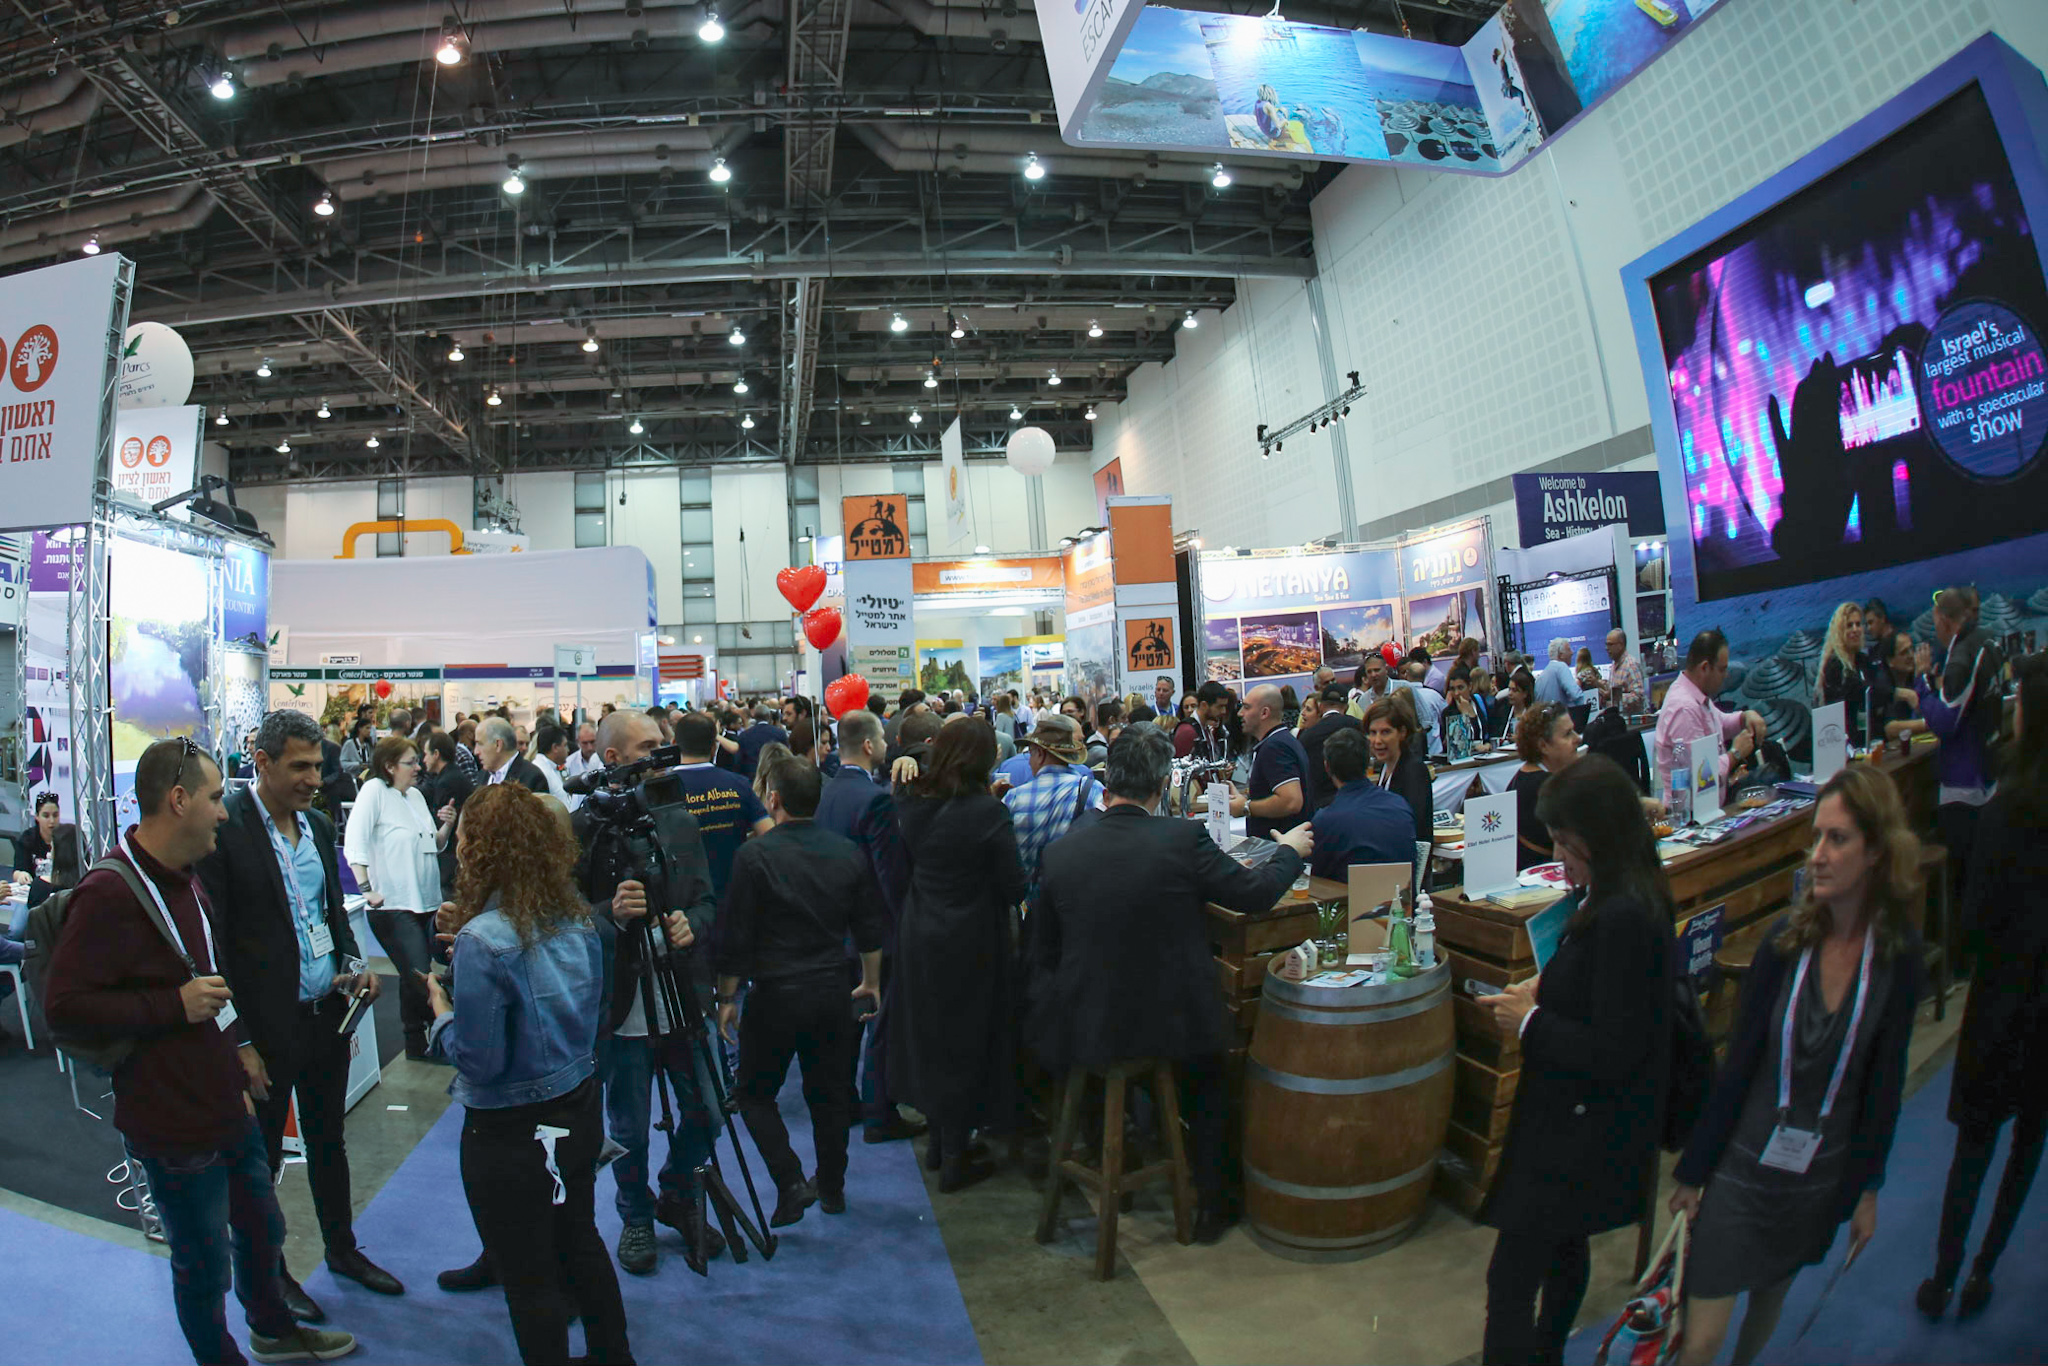 International Tourism Exhibition IMTM 2019, February 12-13 2019, Tel Aviv